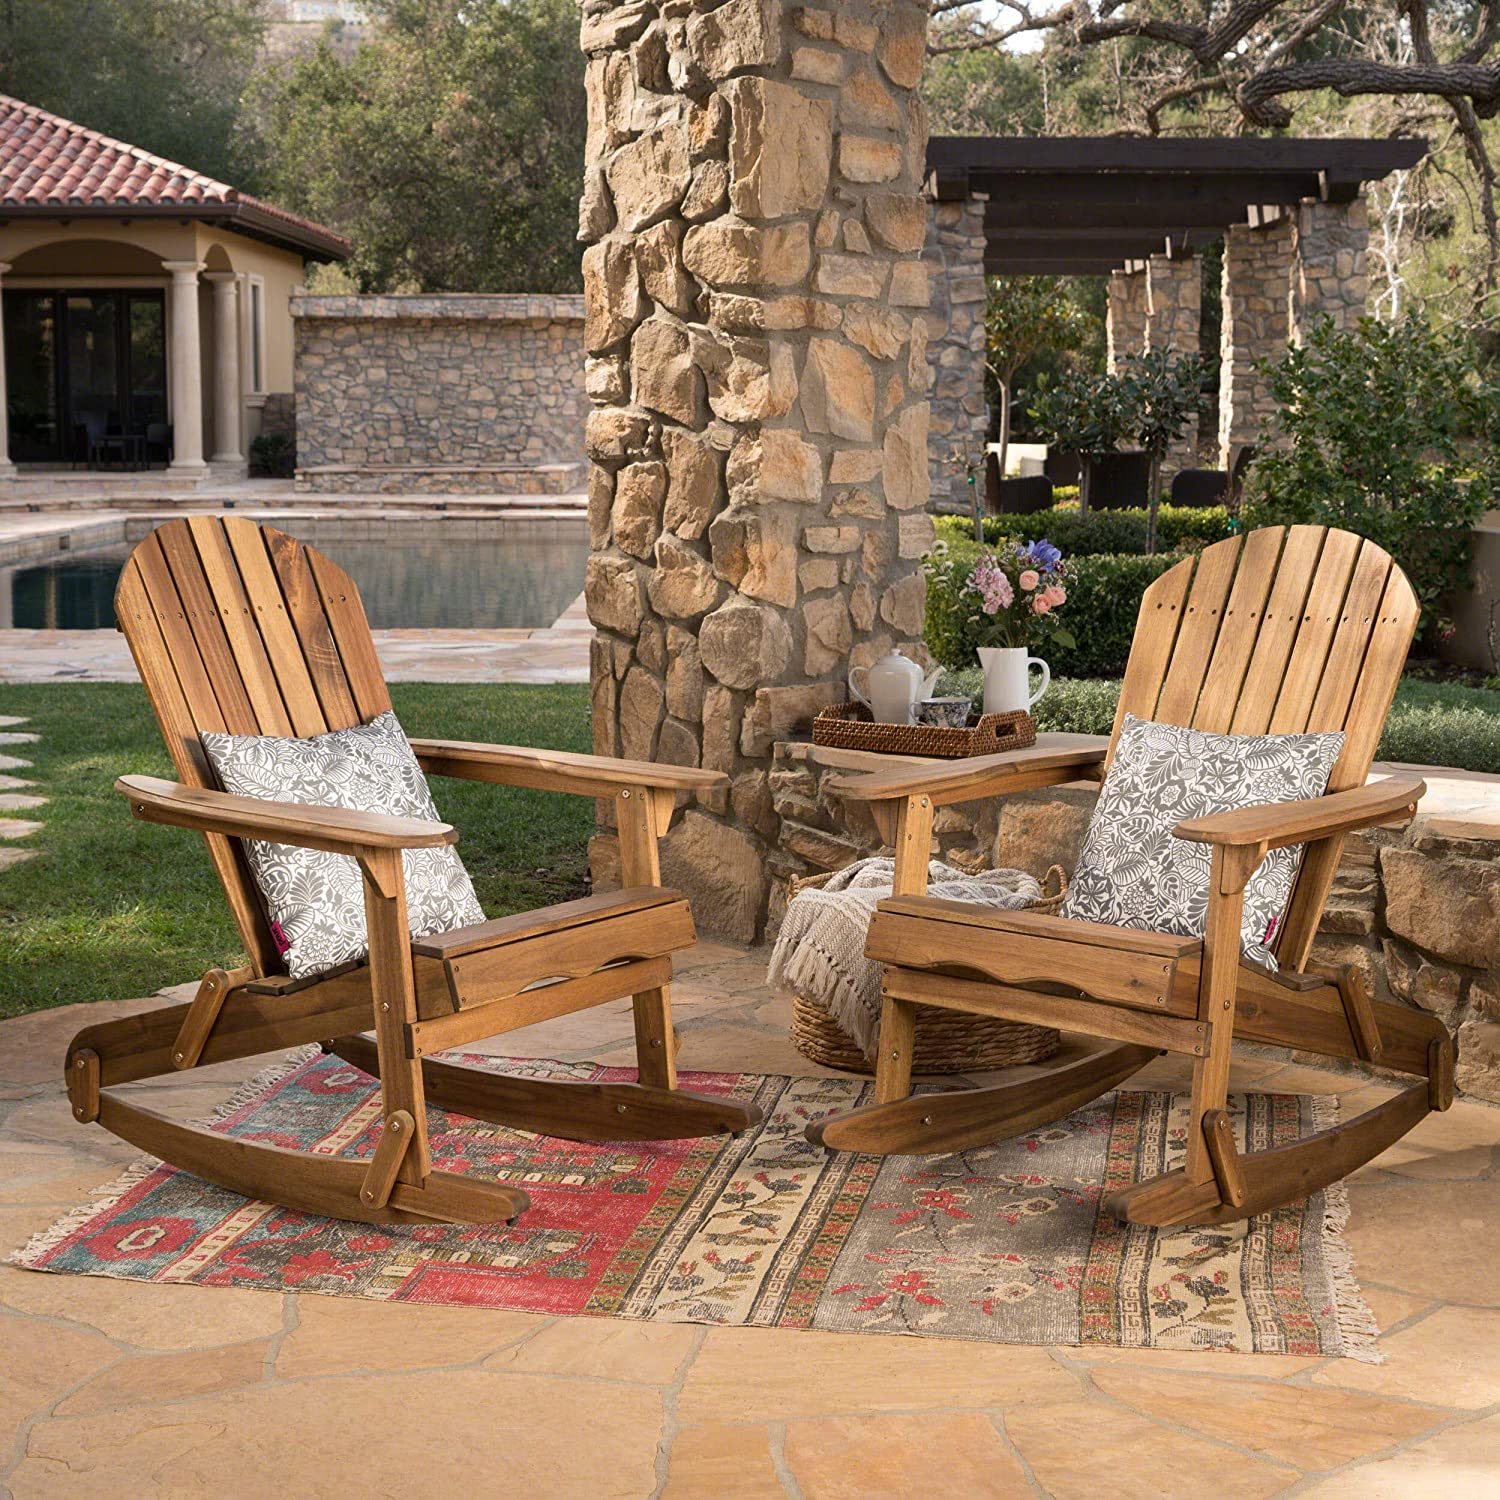 Christopher Knight Home 304055 Estelle Outdoor Finish Acacia Wood Adirondack Rocking Chairs Set of 2 , Natural Stained